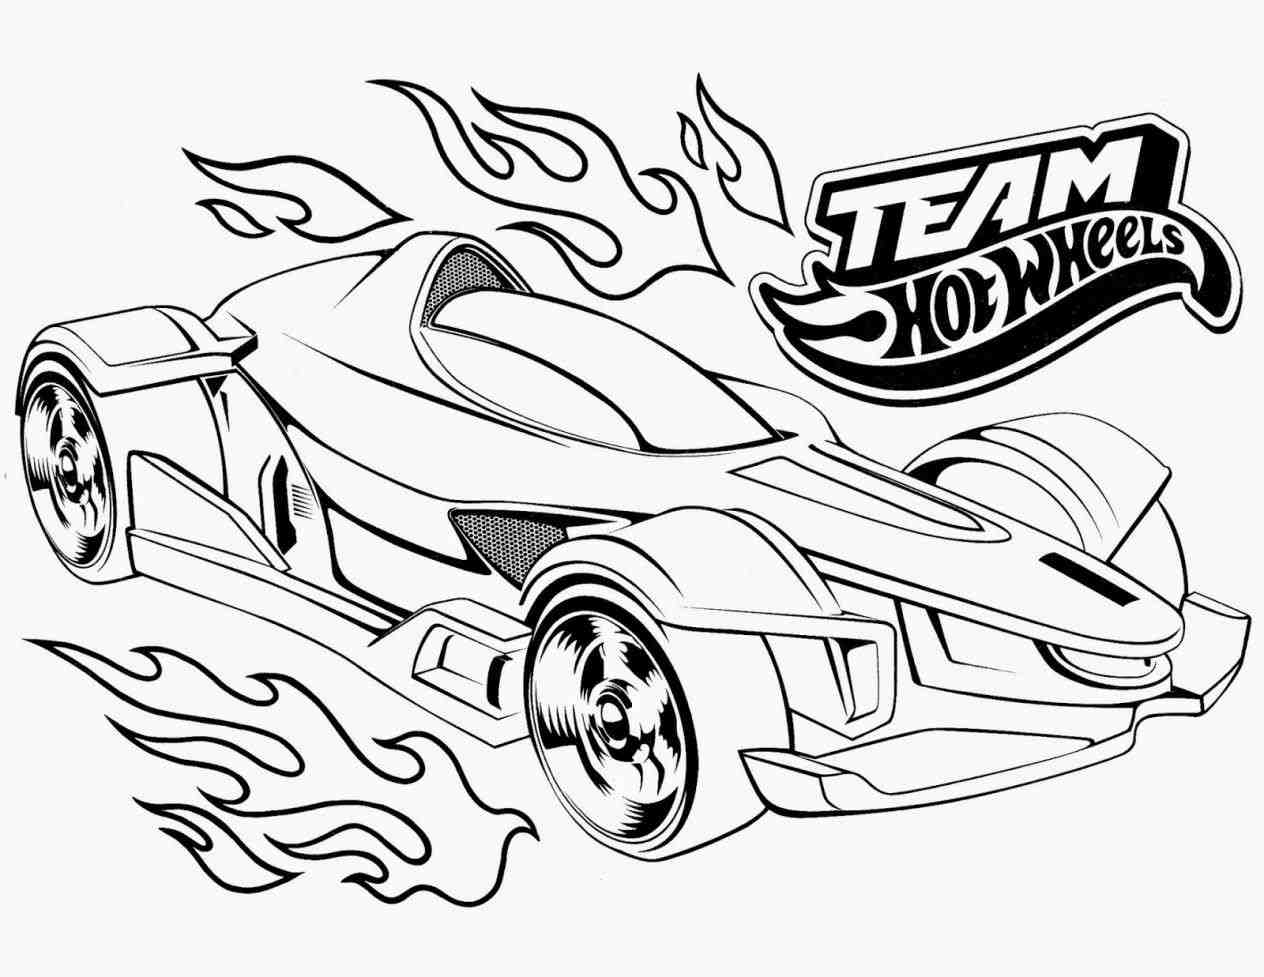 1264x977 Dirt Late Model Coloring Pages